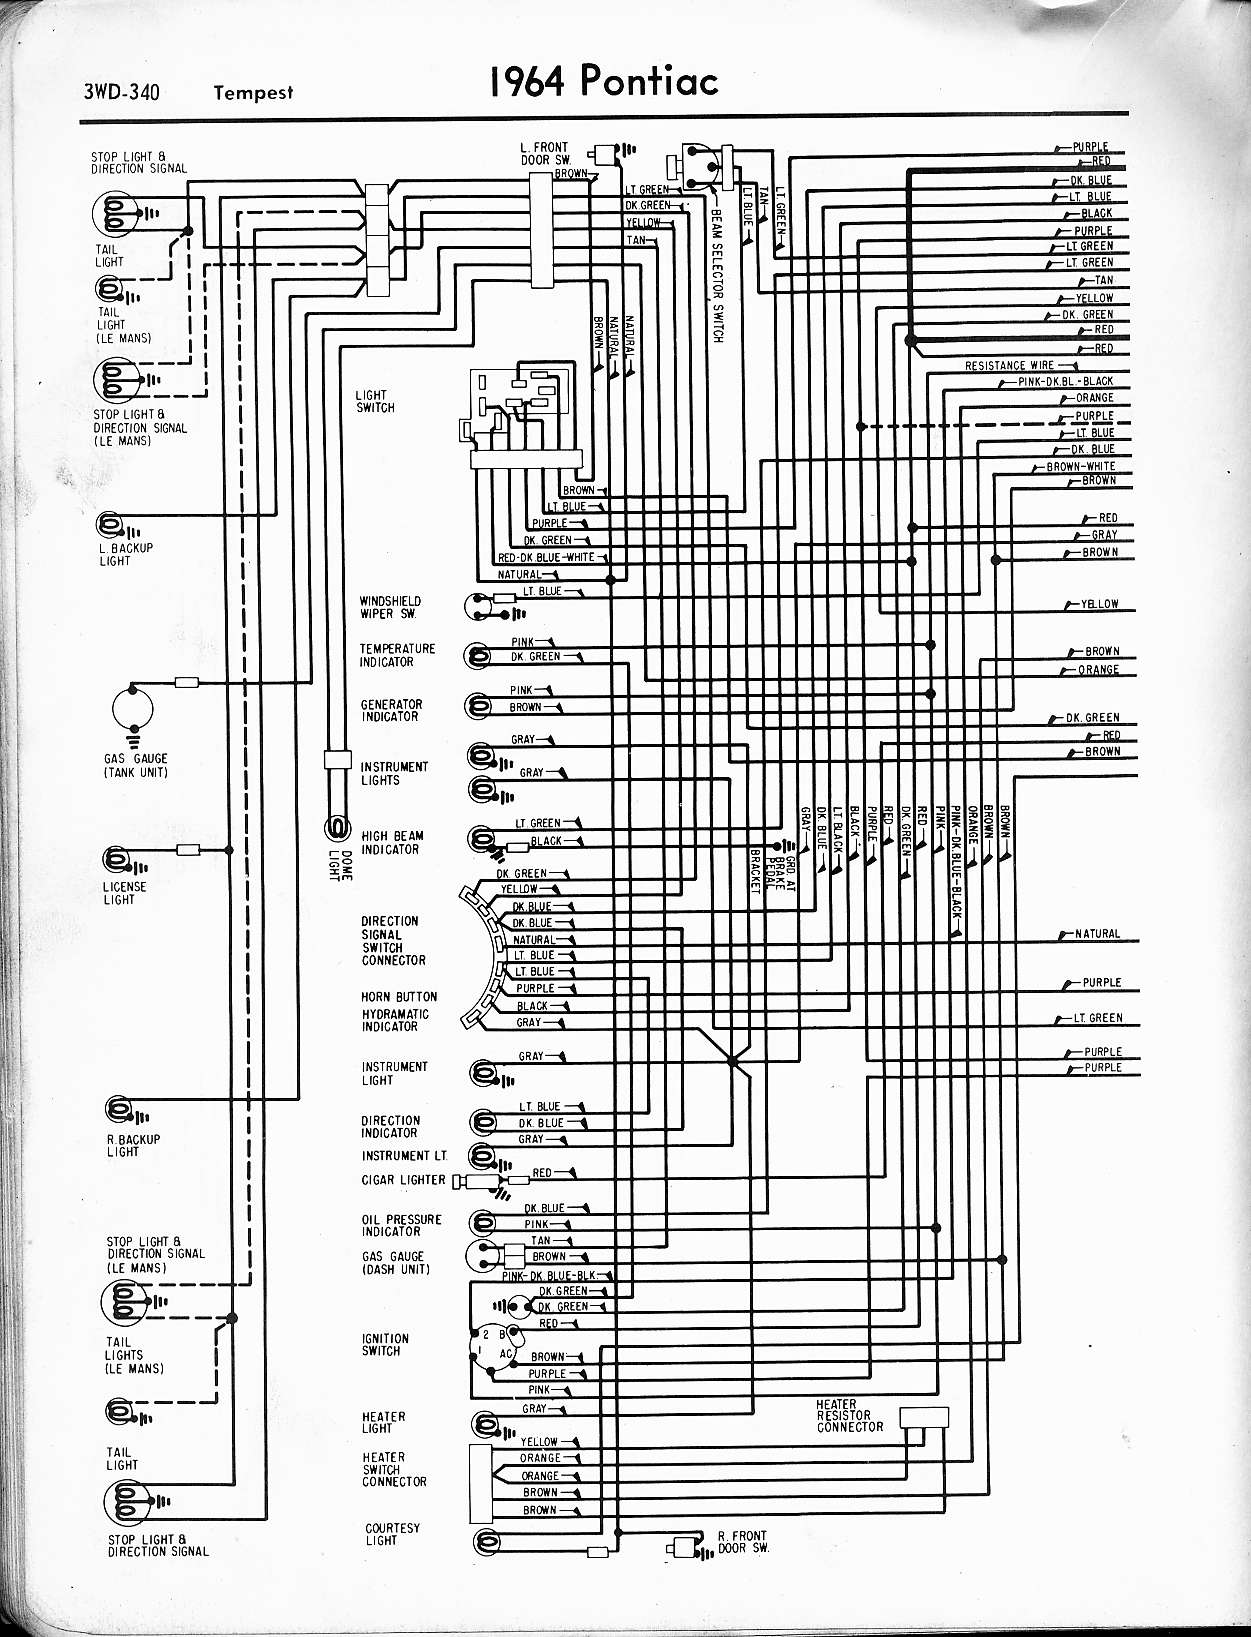 Brilliant 1965 4 Wire Alternator Diagram Wiring Diagram Wiring Digital Resources Spoatbouhousnl